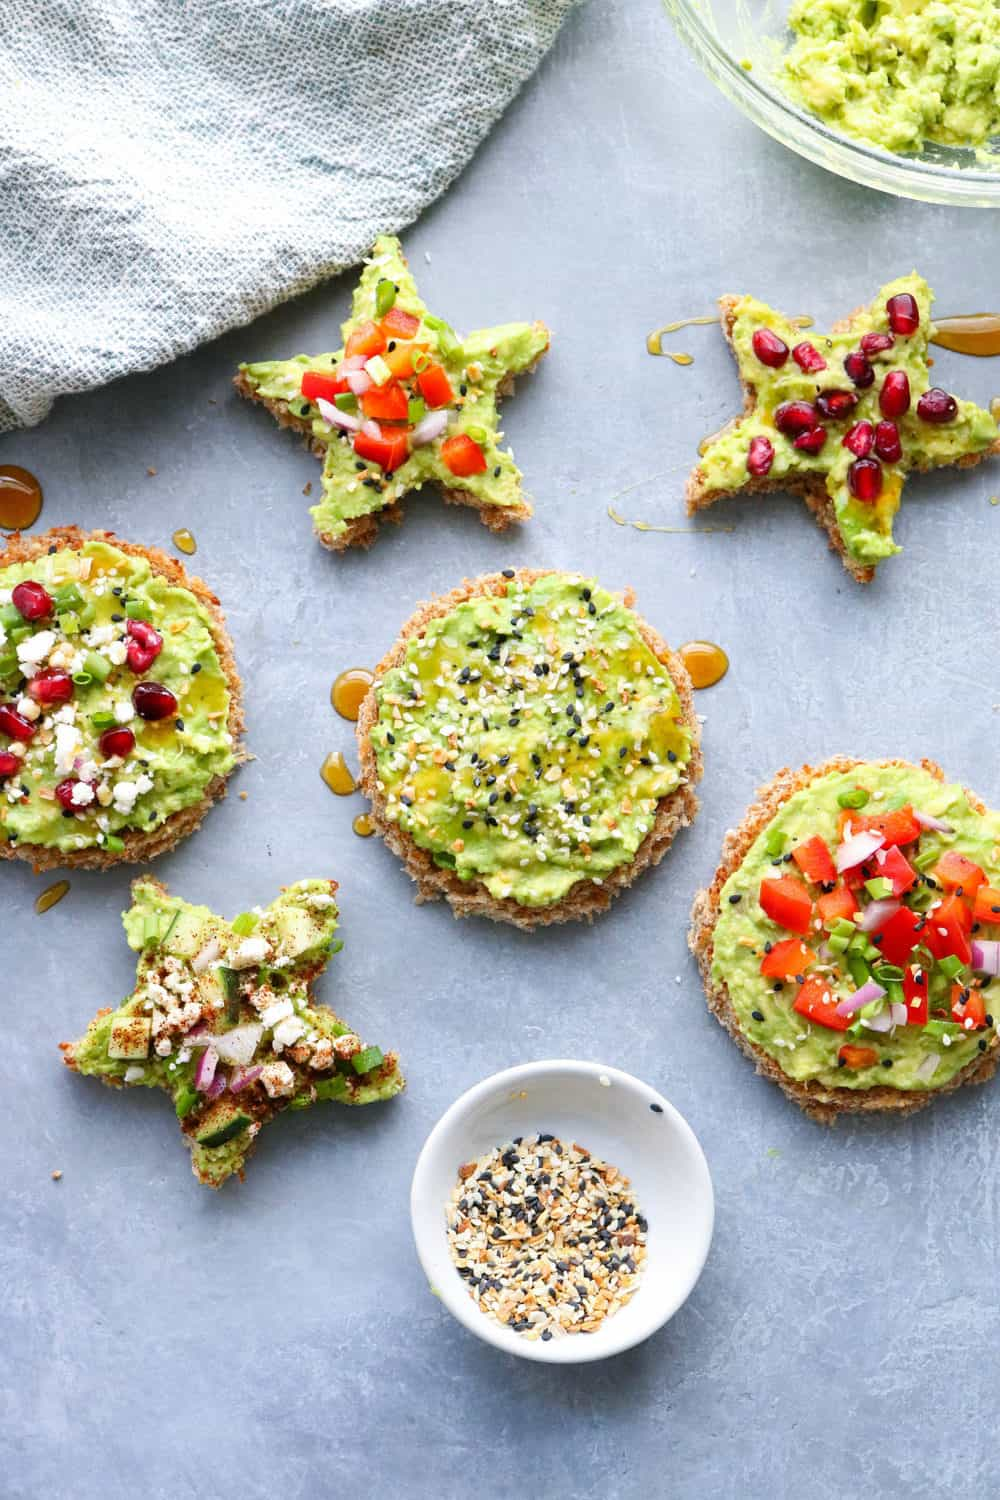 circle and star shapped avocado toast topped with peppers, cheese, and pomagrantes